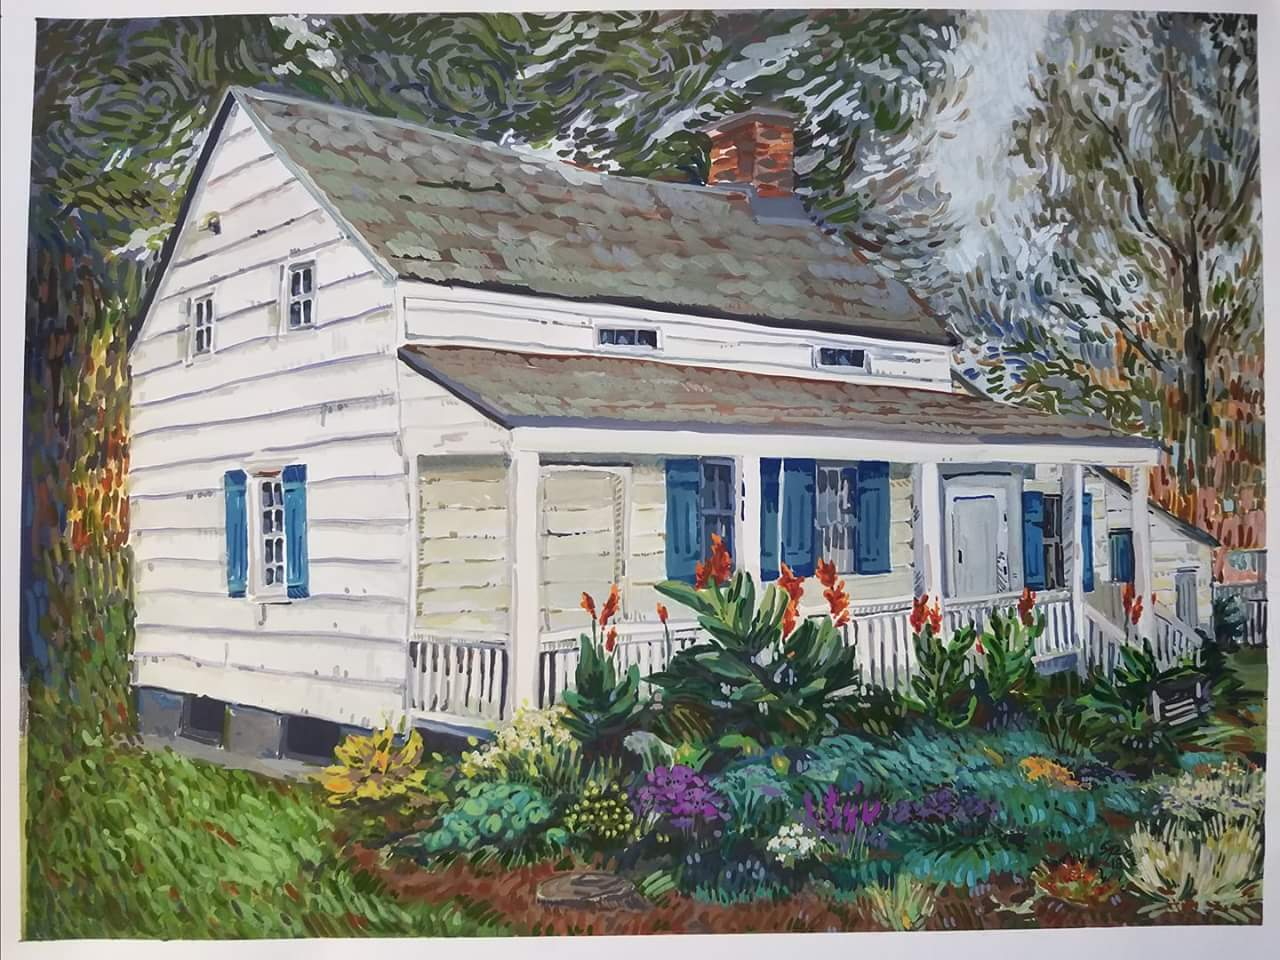 "A Writers' Cottage, Edgar Allan Poe's Cottage in the Bronx  by Sara Pruiksma, gouache on paper, 14.5"" x 19.5"" 2018"